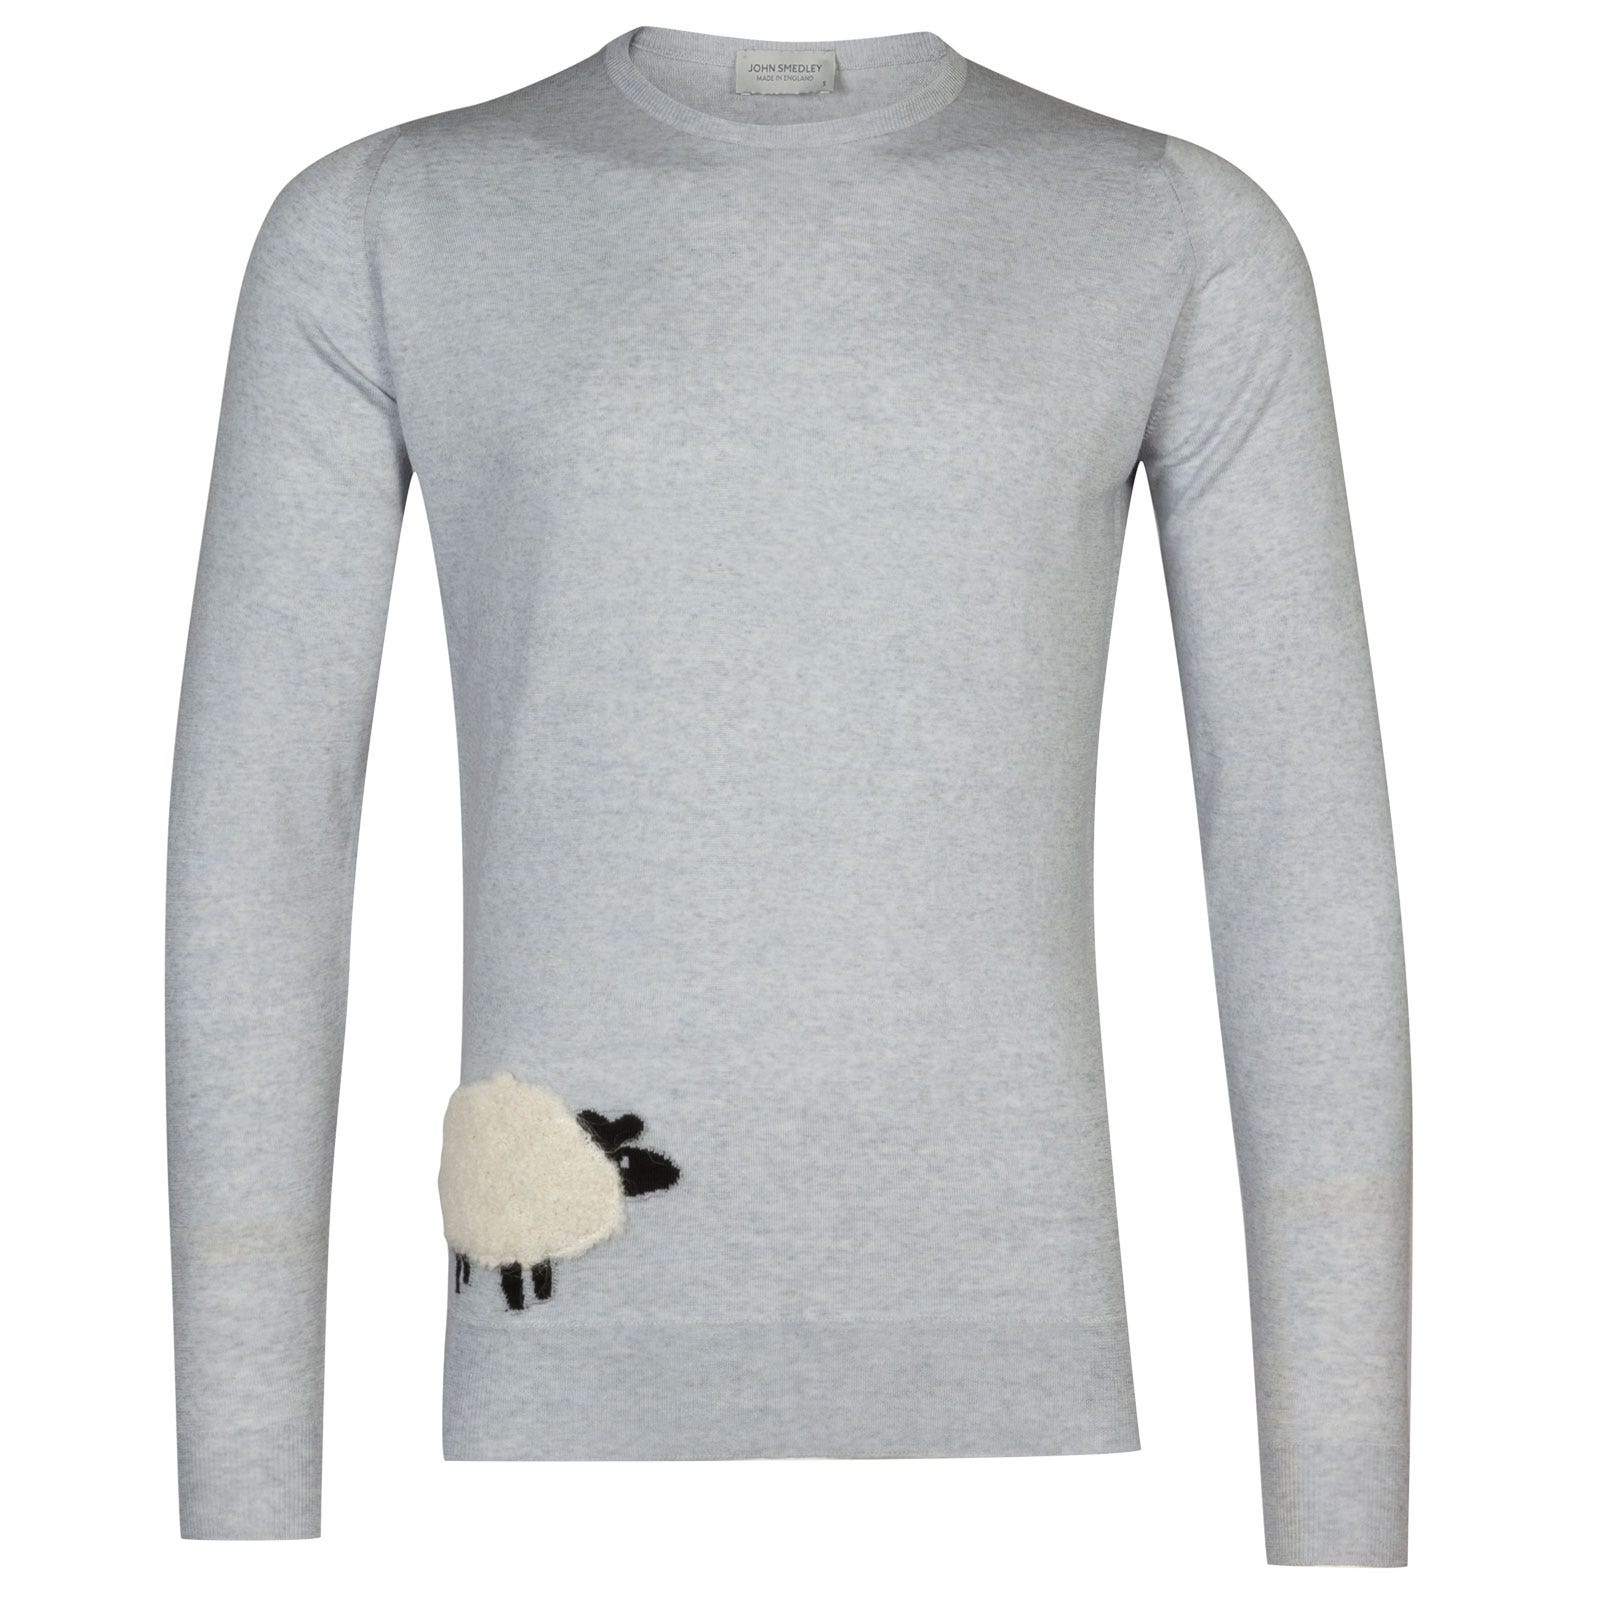 John Smedley Sheep Merino Wool Sweater in Kielder Green/Snow White-S